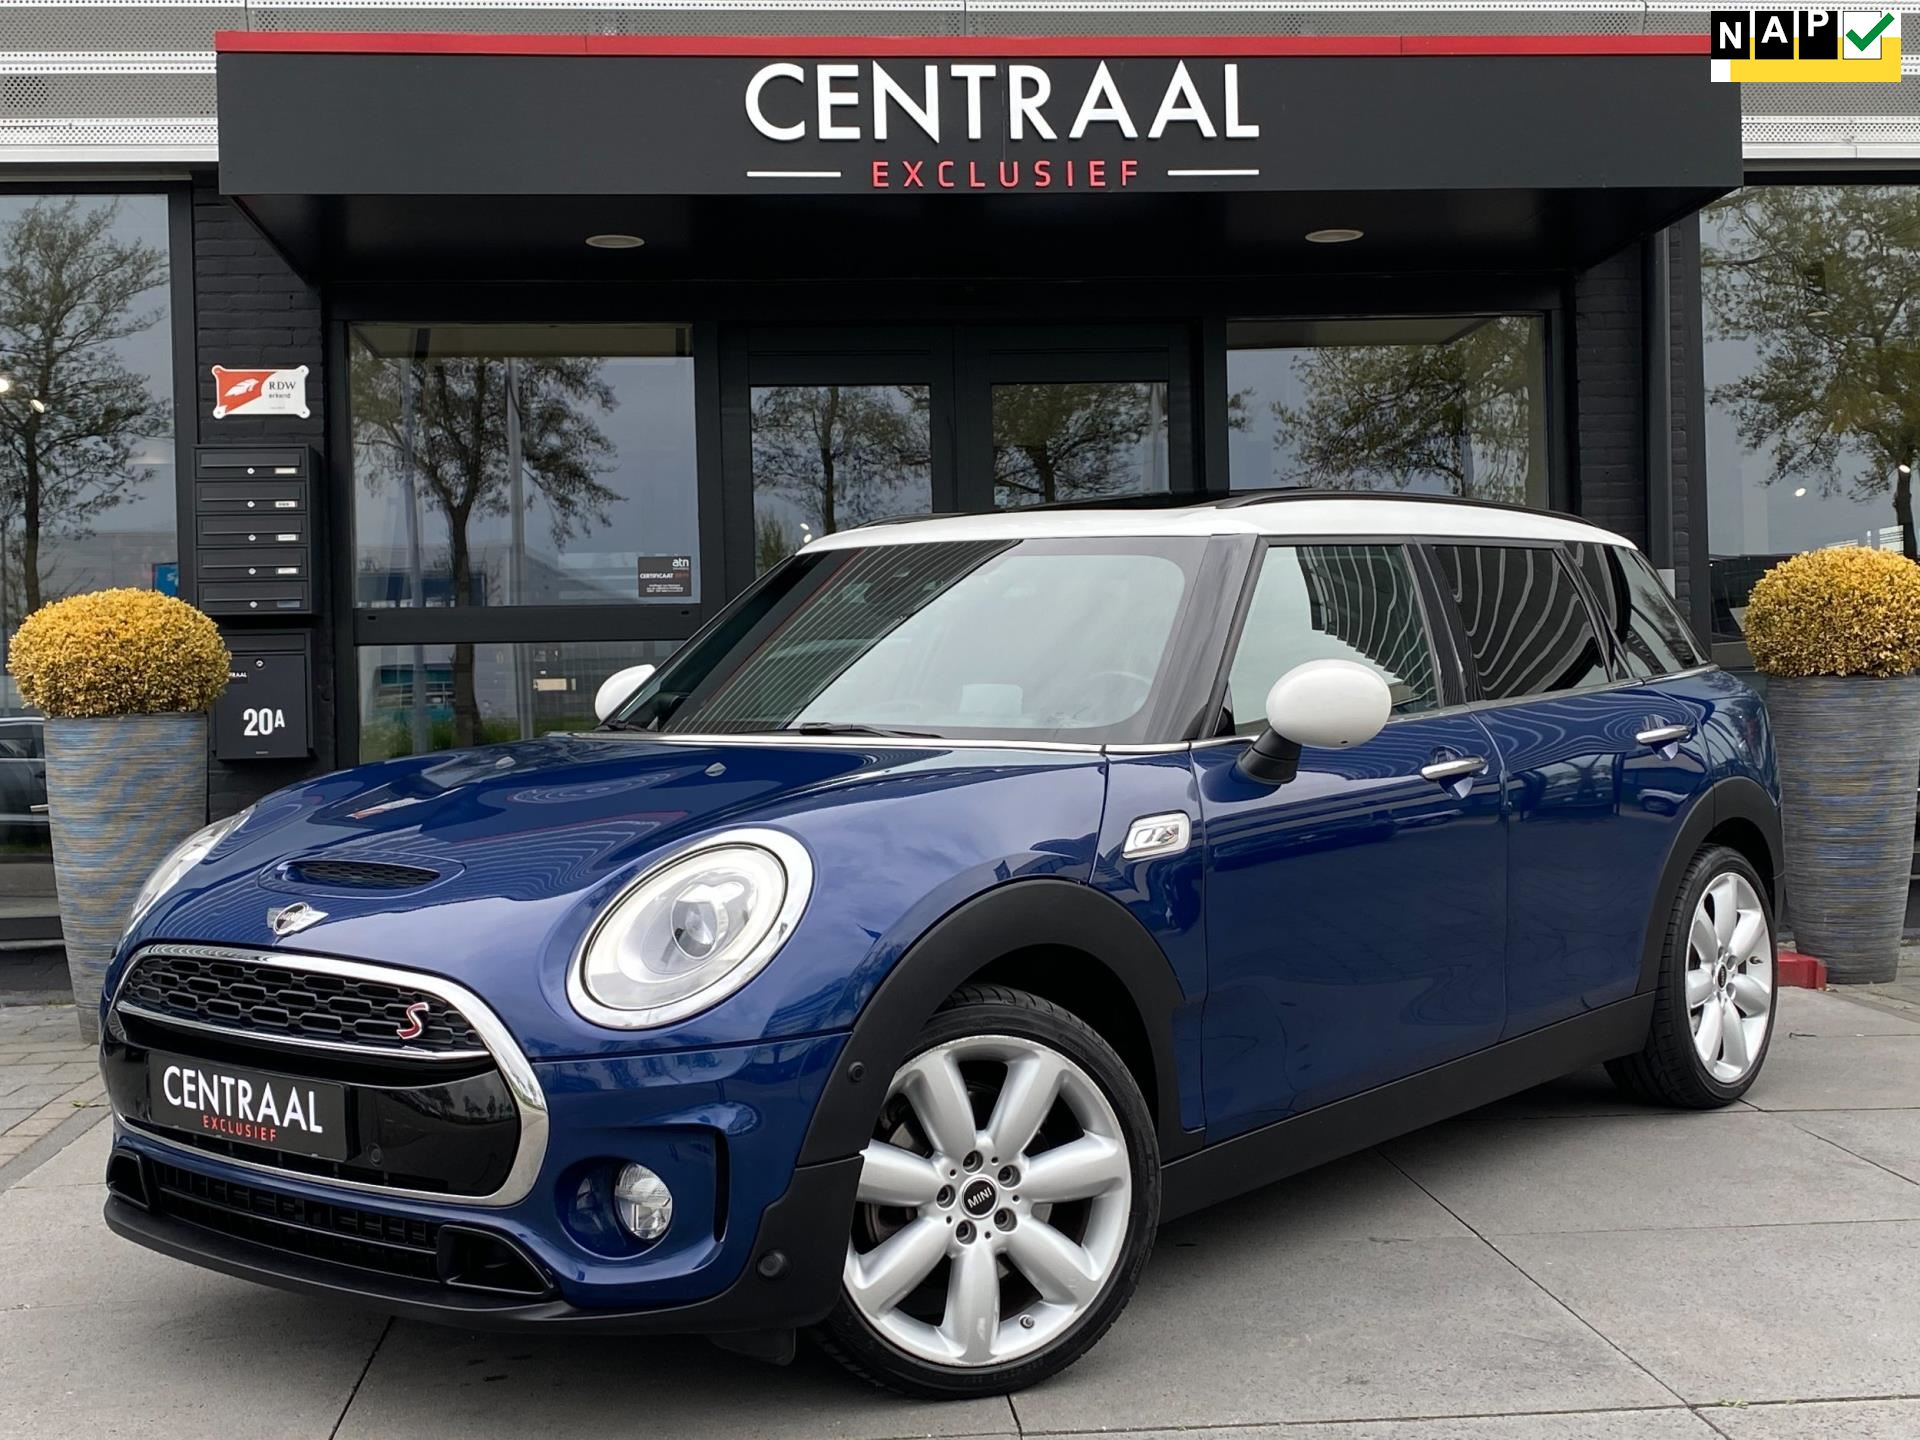 Mini Clubman occasion - Centraal Exclusief B.V.